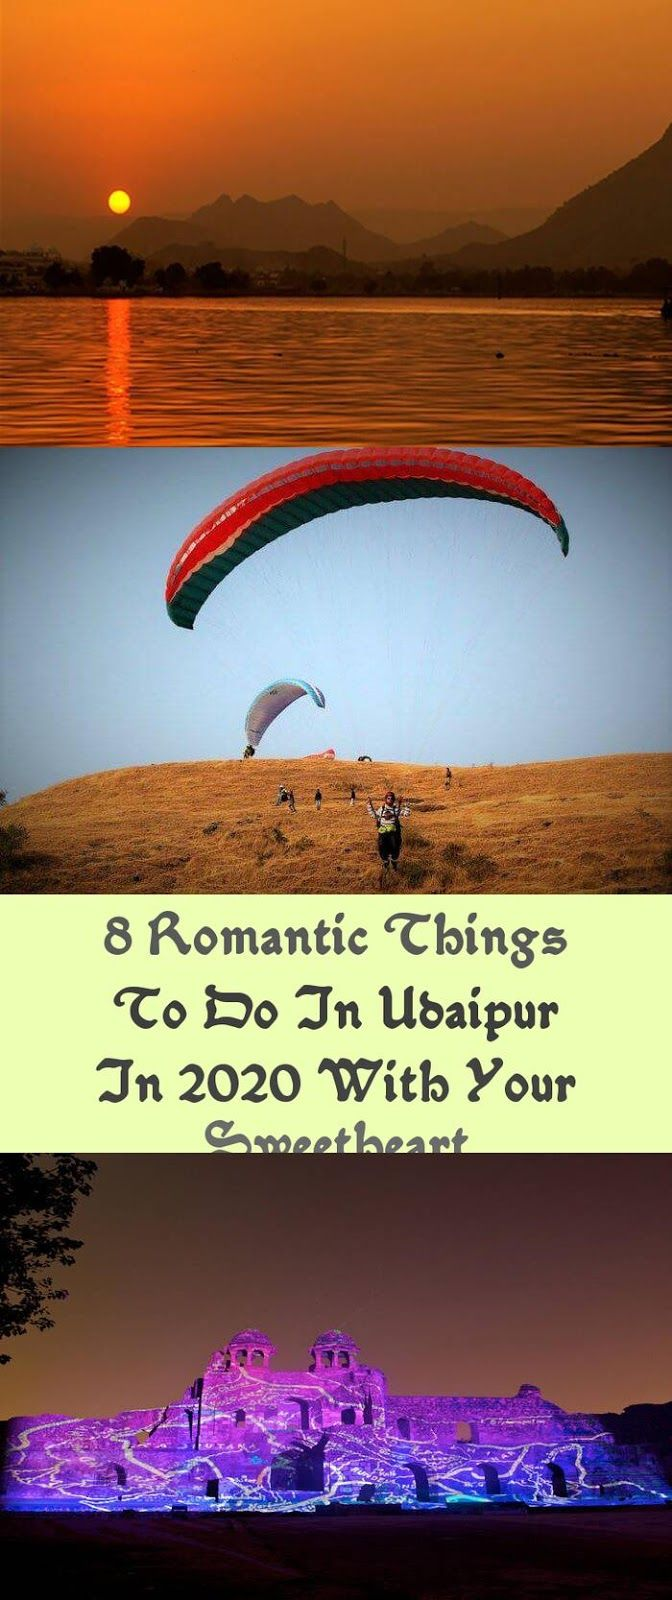 Eight Romantic Issues To Do In Udaipur In 2020 With Your Sweetheart